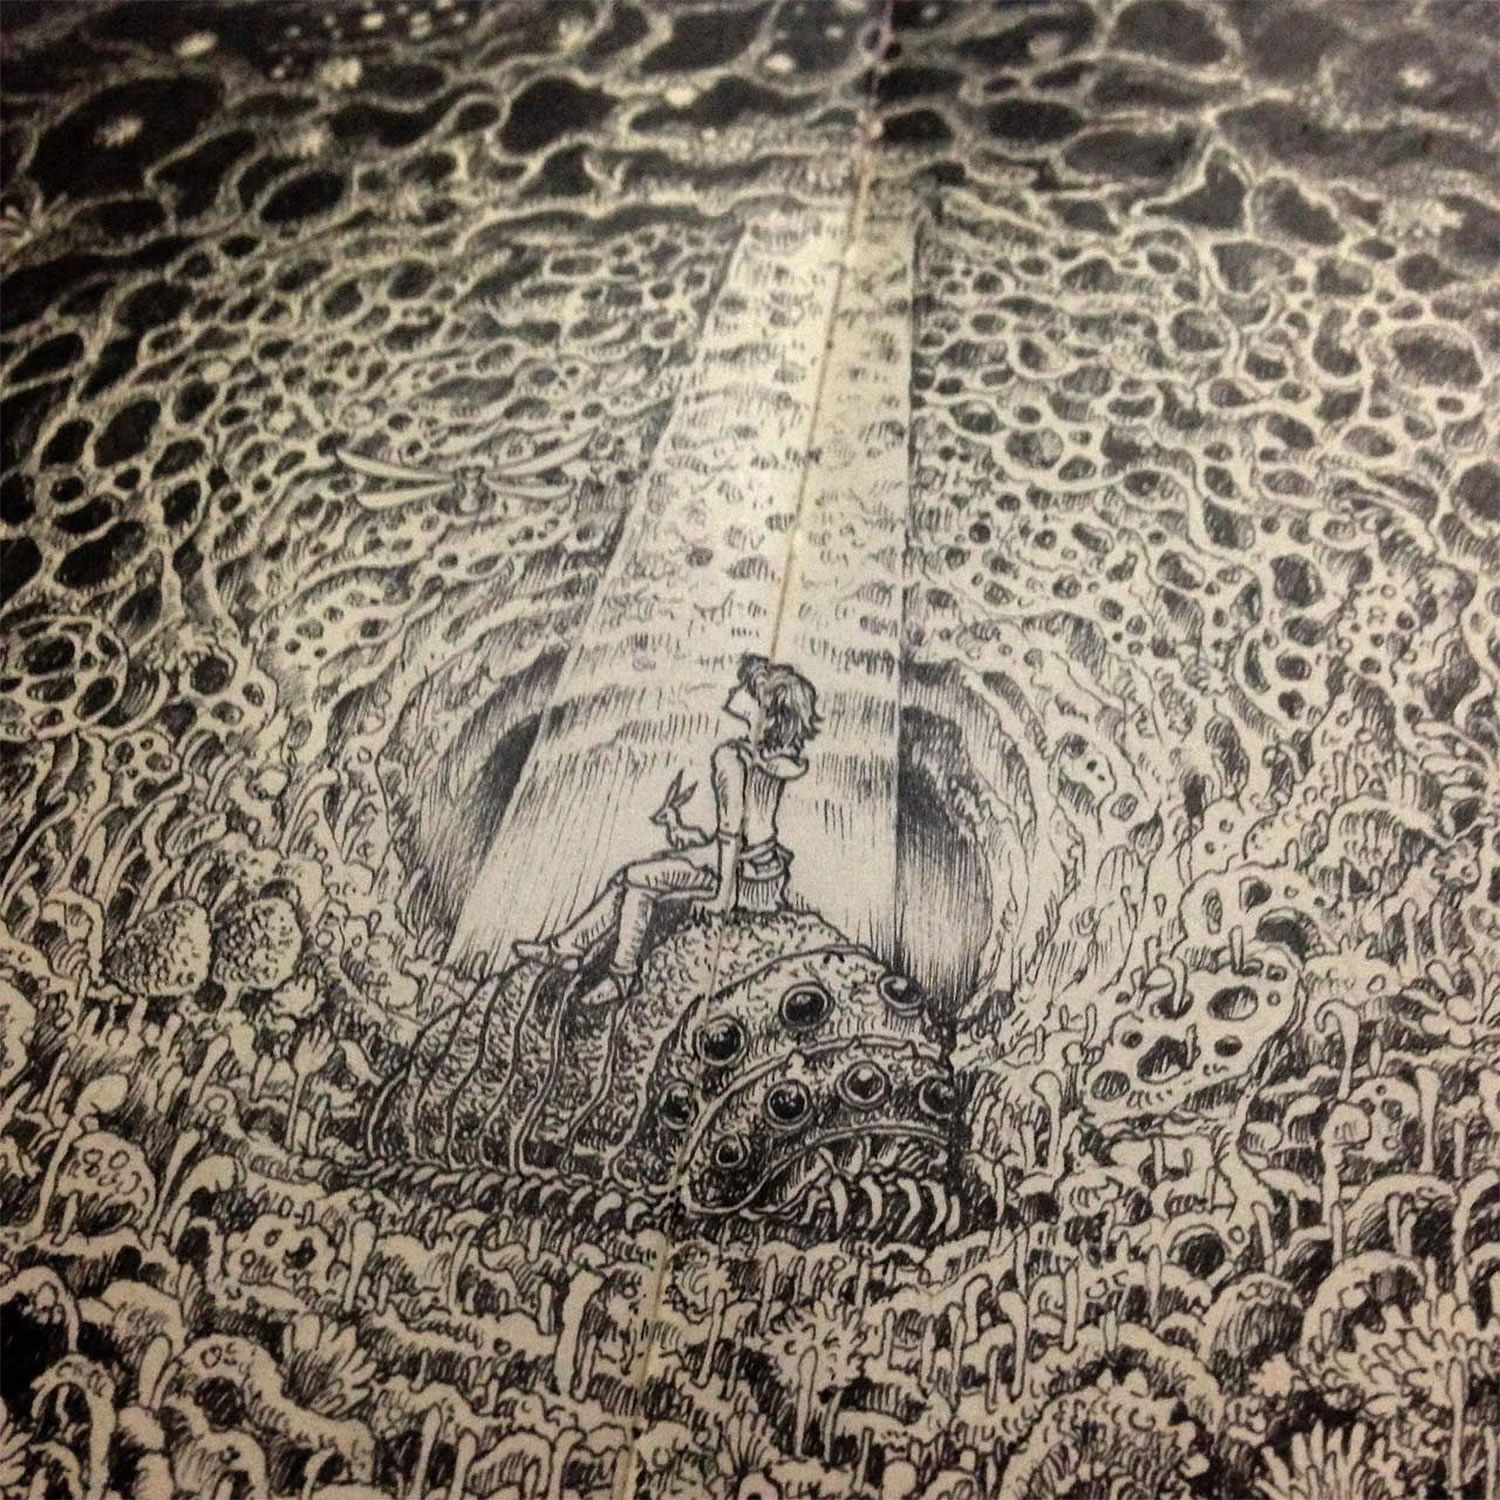 close-up of dark drawing